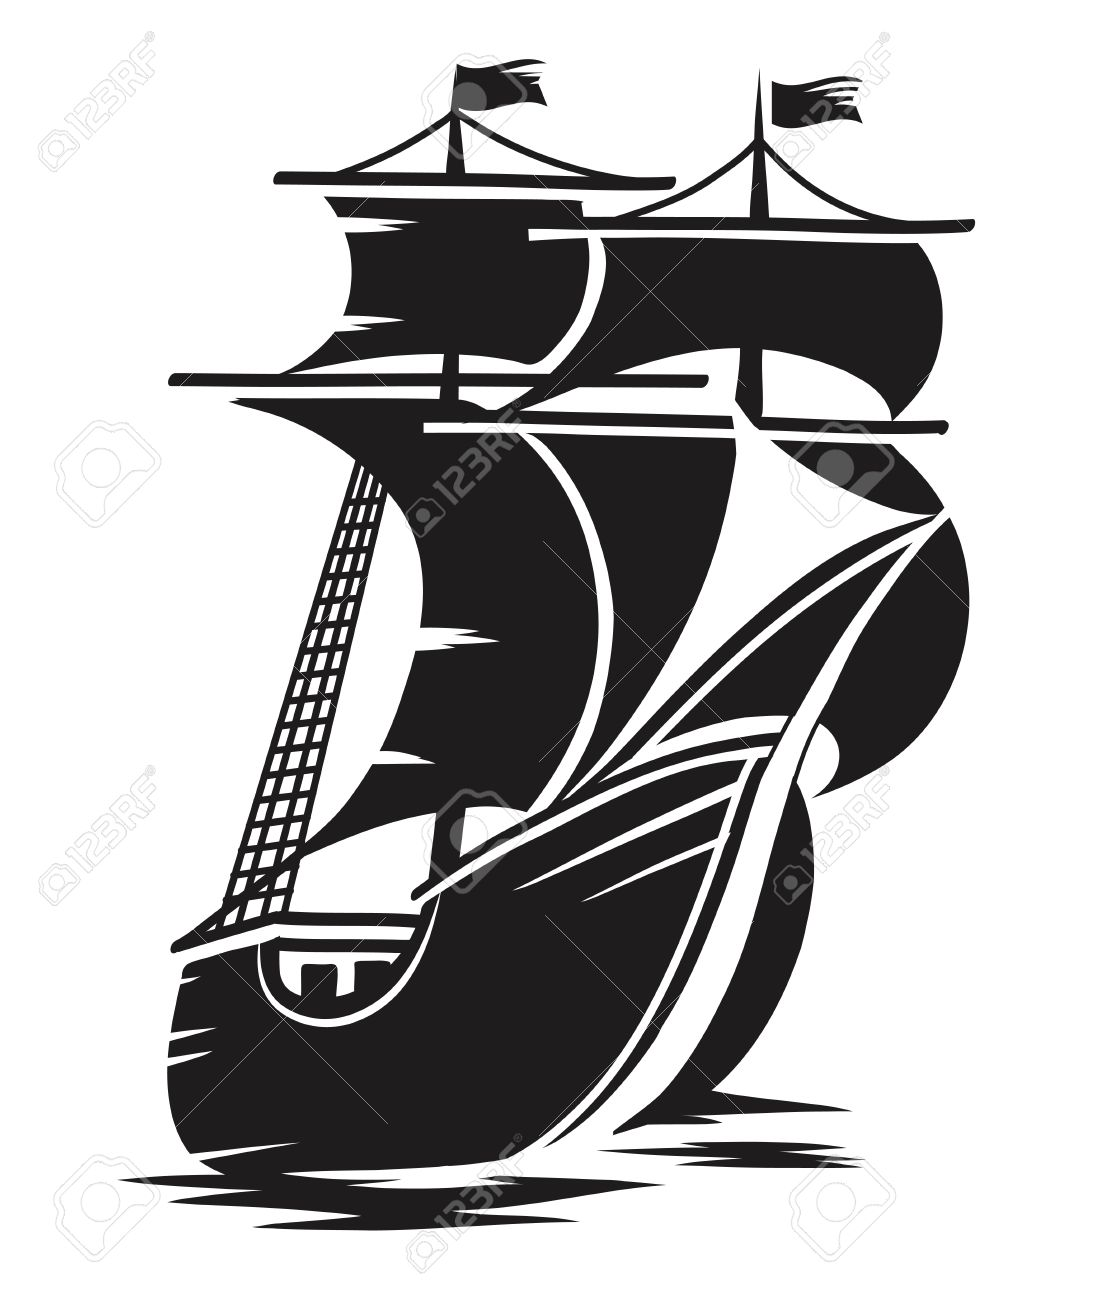 hight resolution of vector vector black and white schematic drawing of the ship